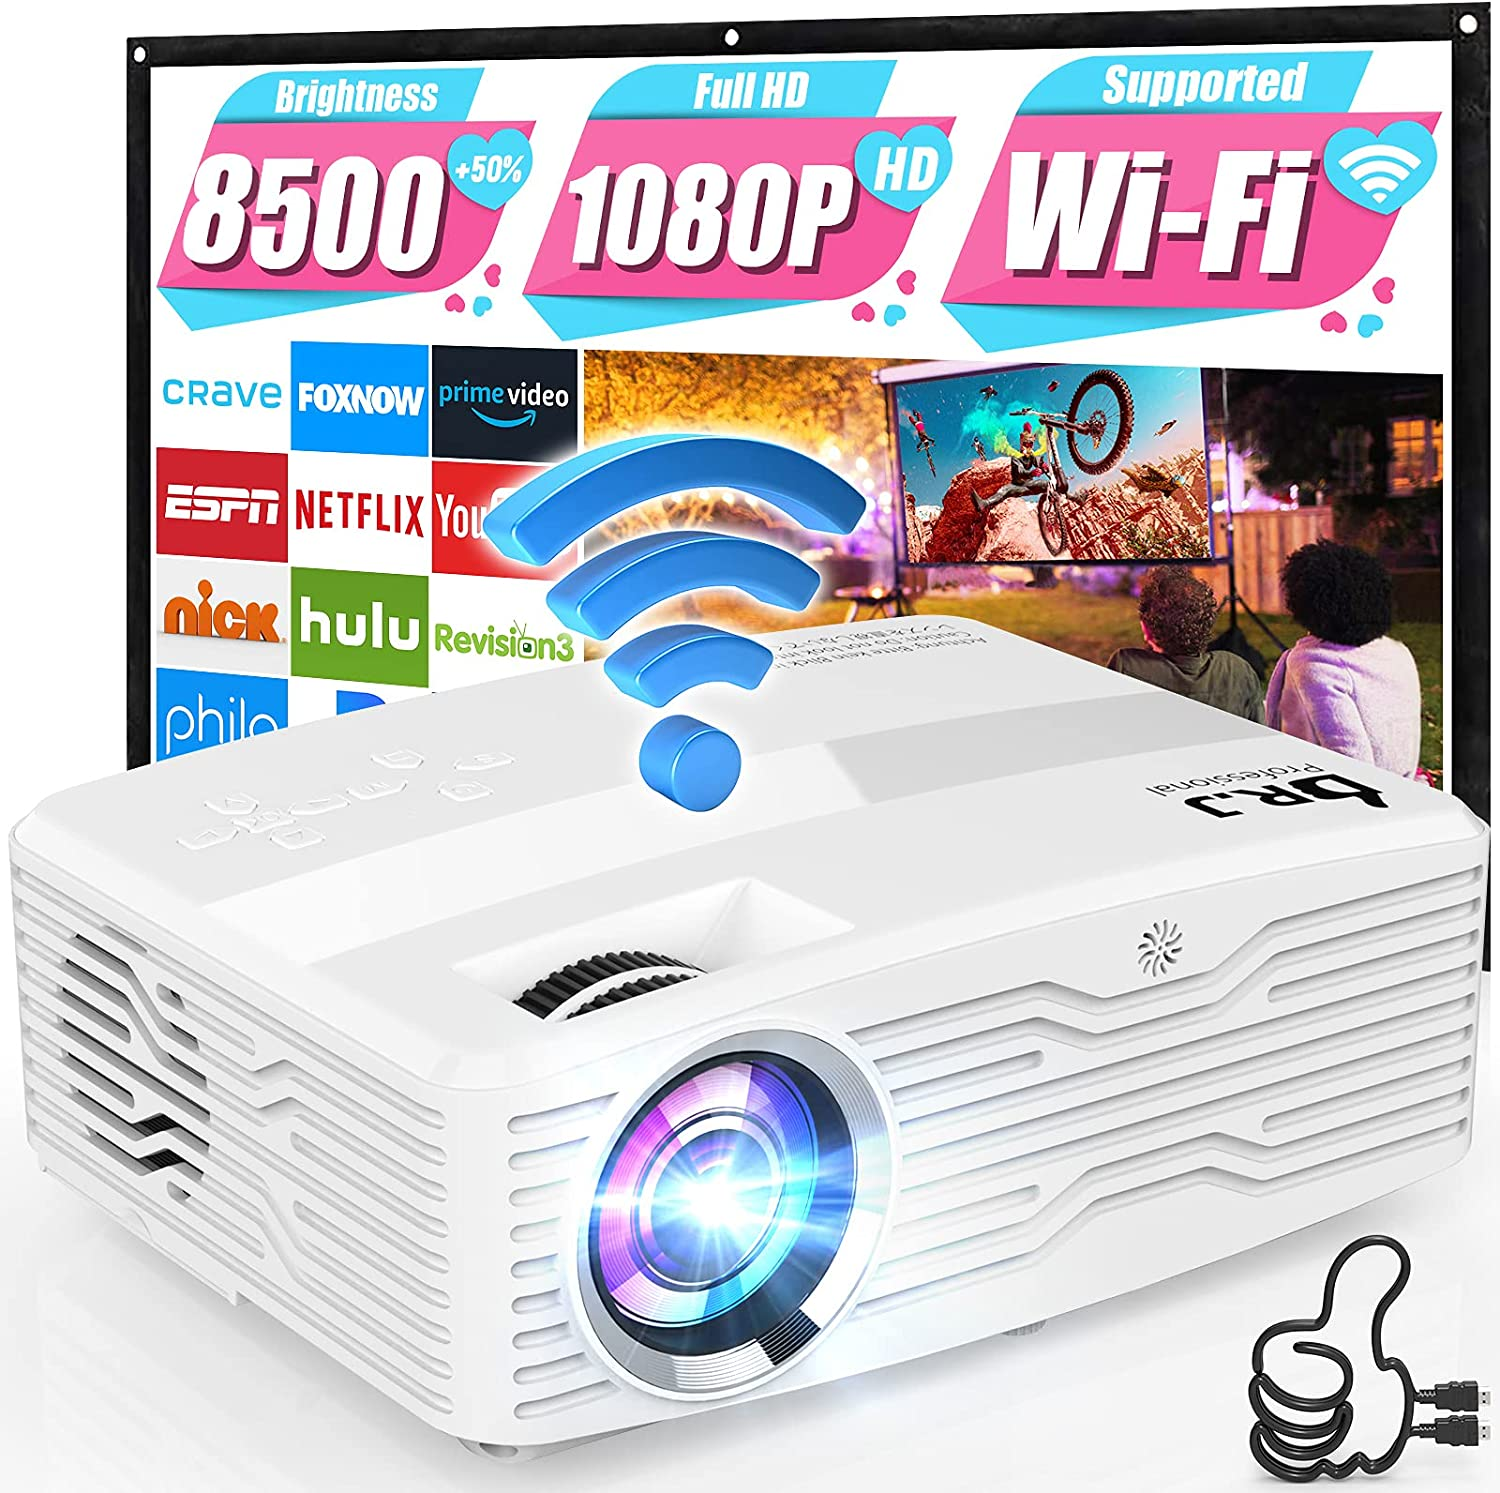 5G WiFi 4K Projector, 8500Lumens Native 1080P Full HD Projector LCD Projector for Outdoor Movies, Wireless Mirroring/4K/Smartphone/TV Stick/HDMI/USB Supported [120